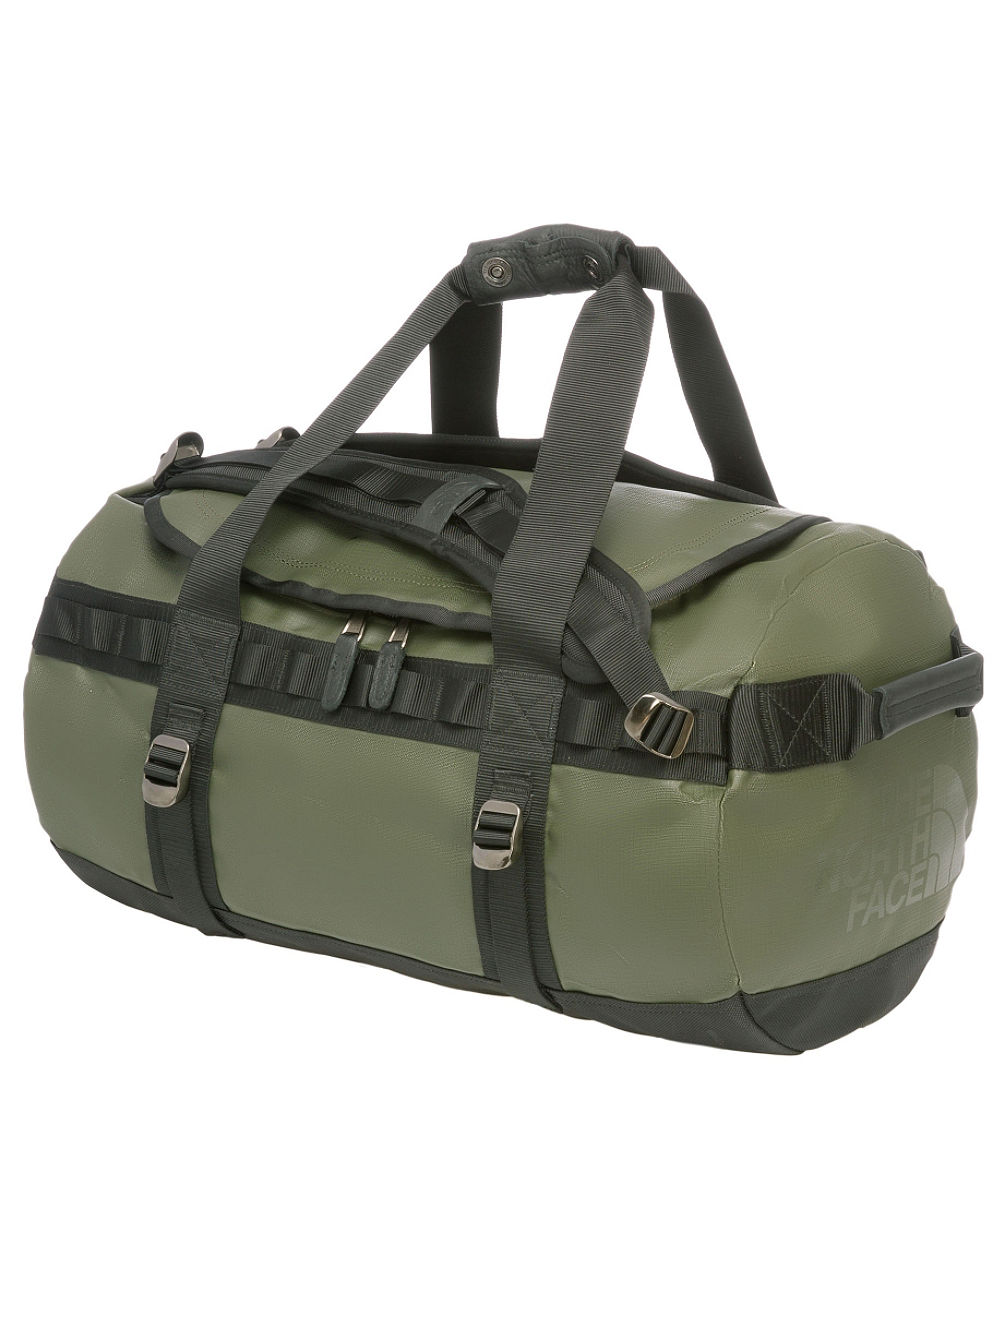 9f3b882fe1 Buy THE NORTH FACE Base Camp Duffel - S Special Edition online at ...